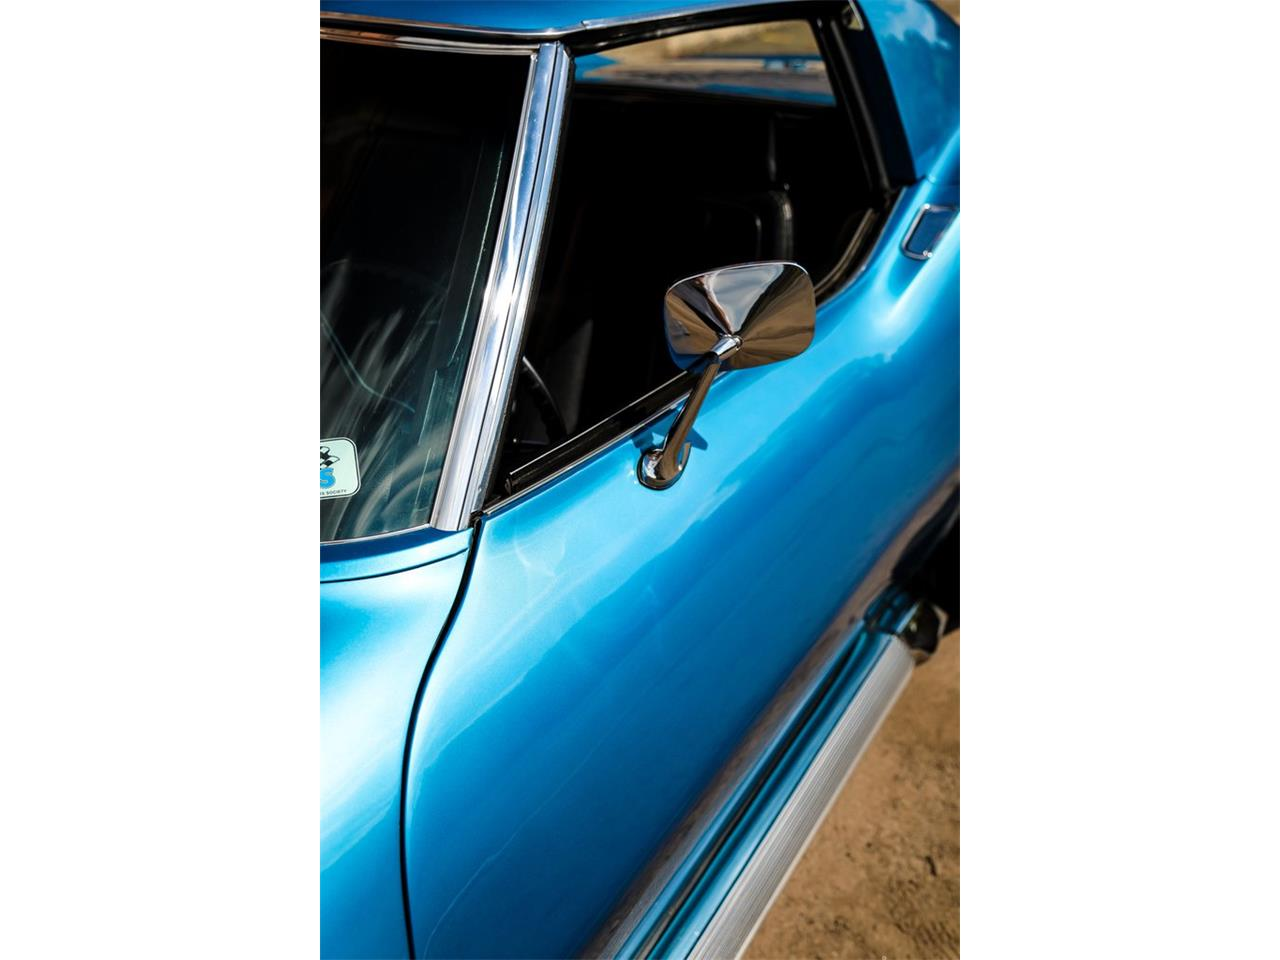 1969 Chevrolet Corvette for sale in Wallingford, CT – photo 82